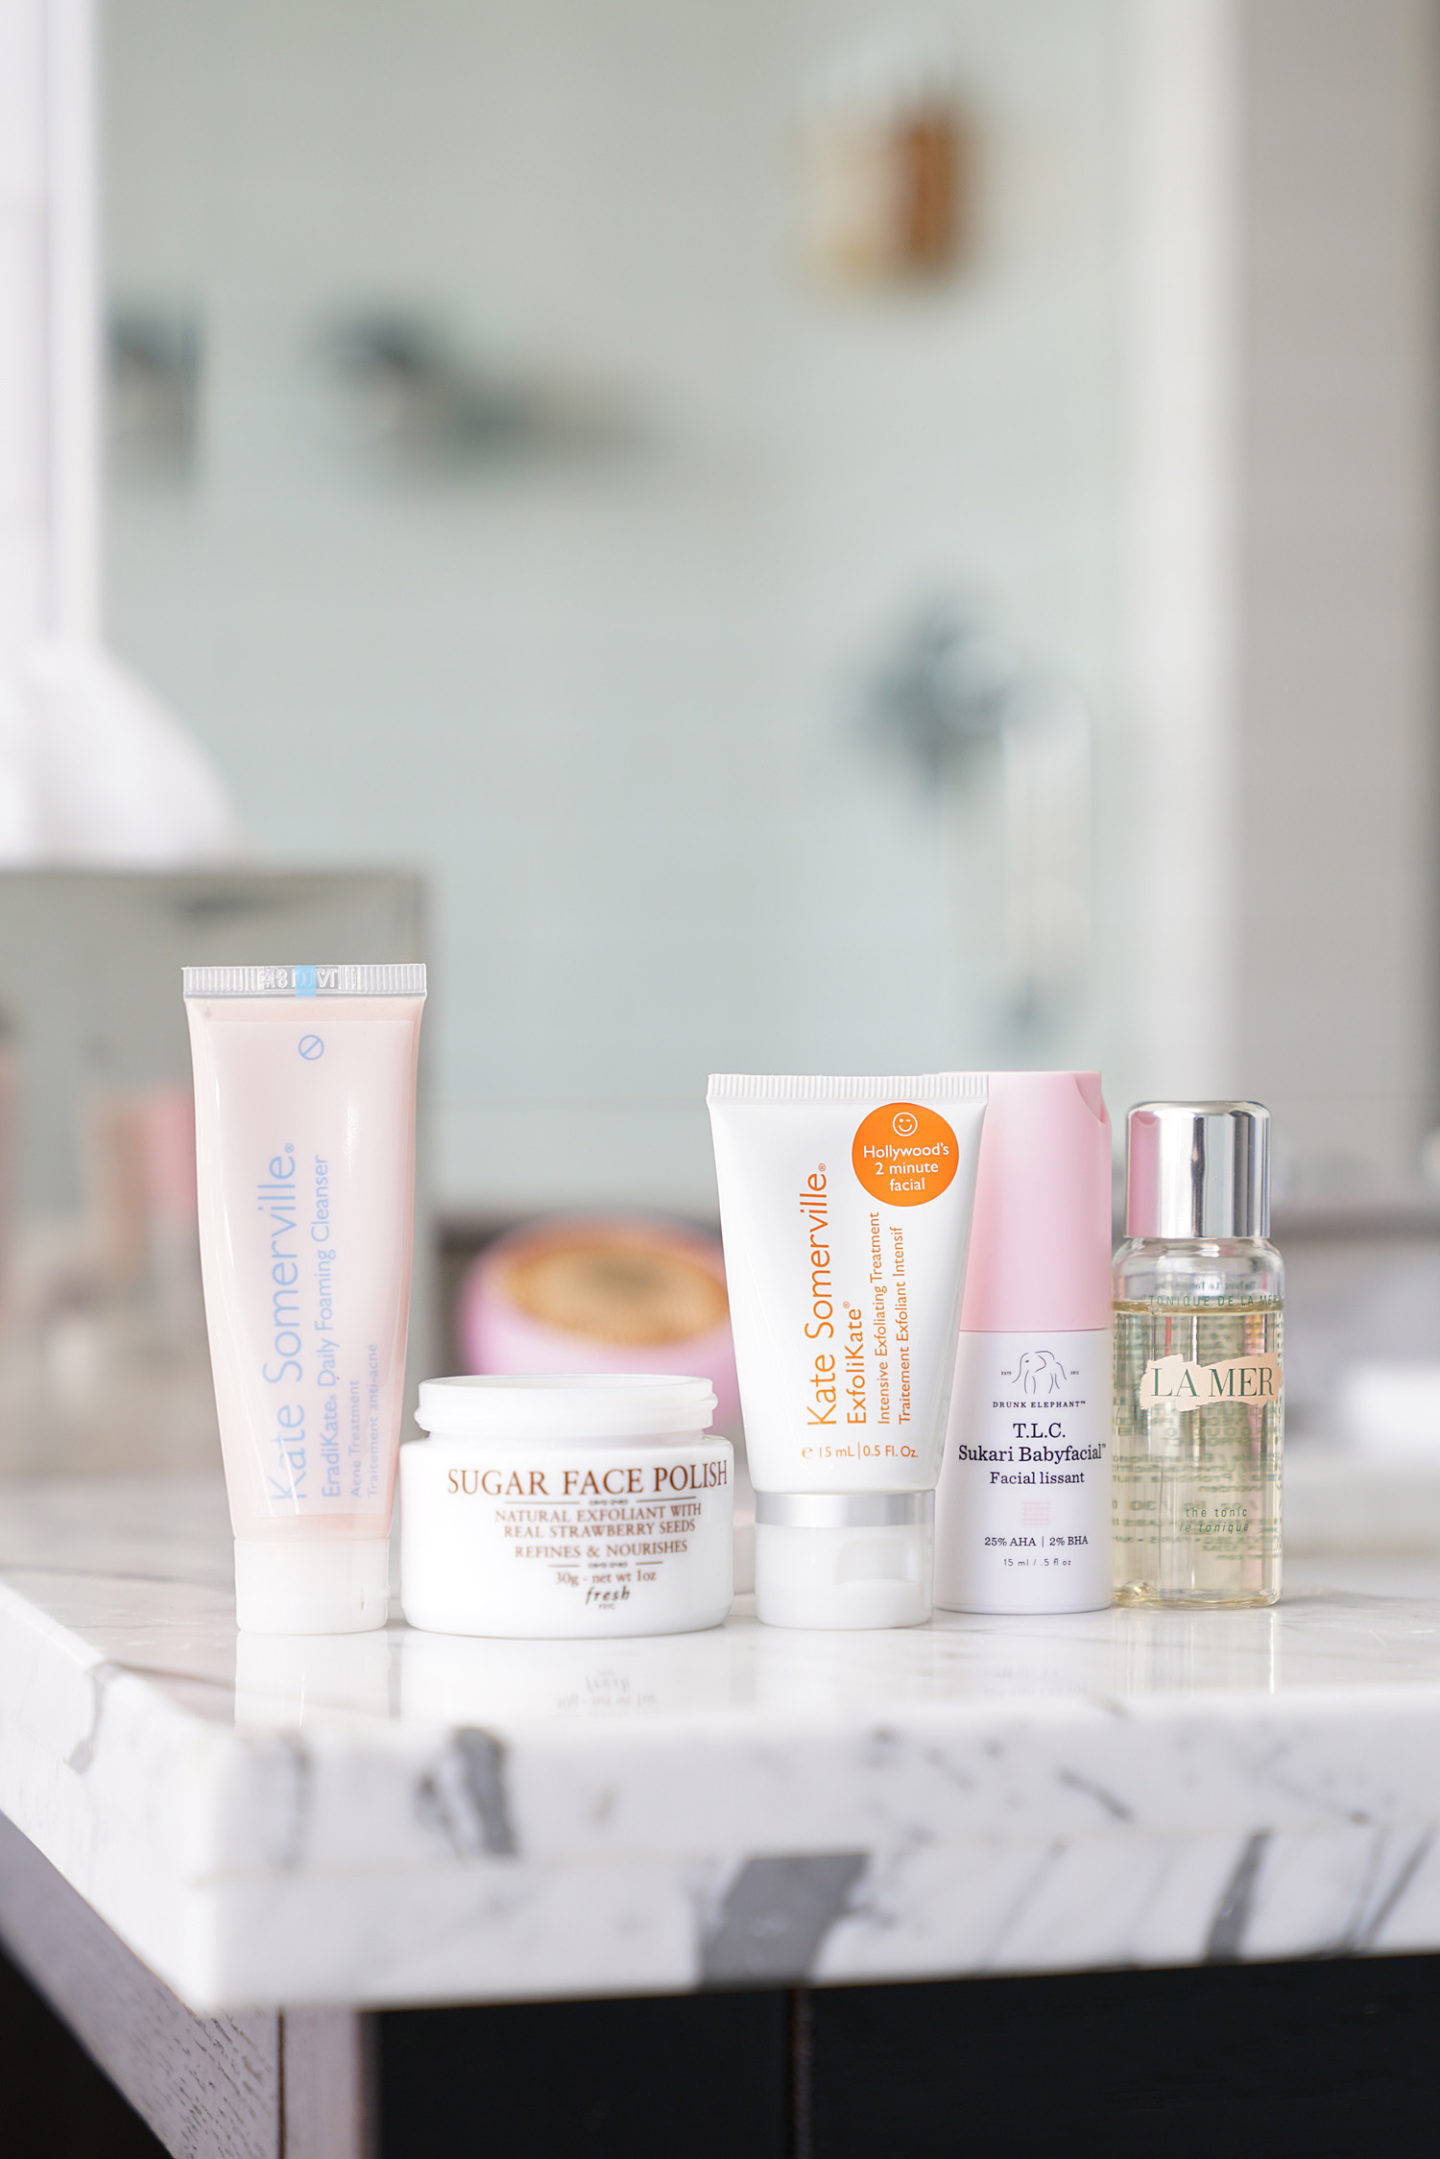 Travel Skincare Kate Somerville Cleansers, Fresh Beauty Scrub, Drunk Elephant